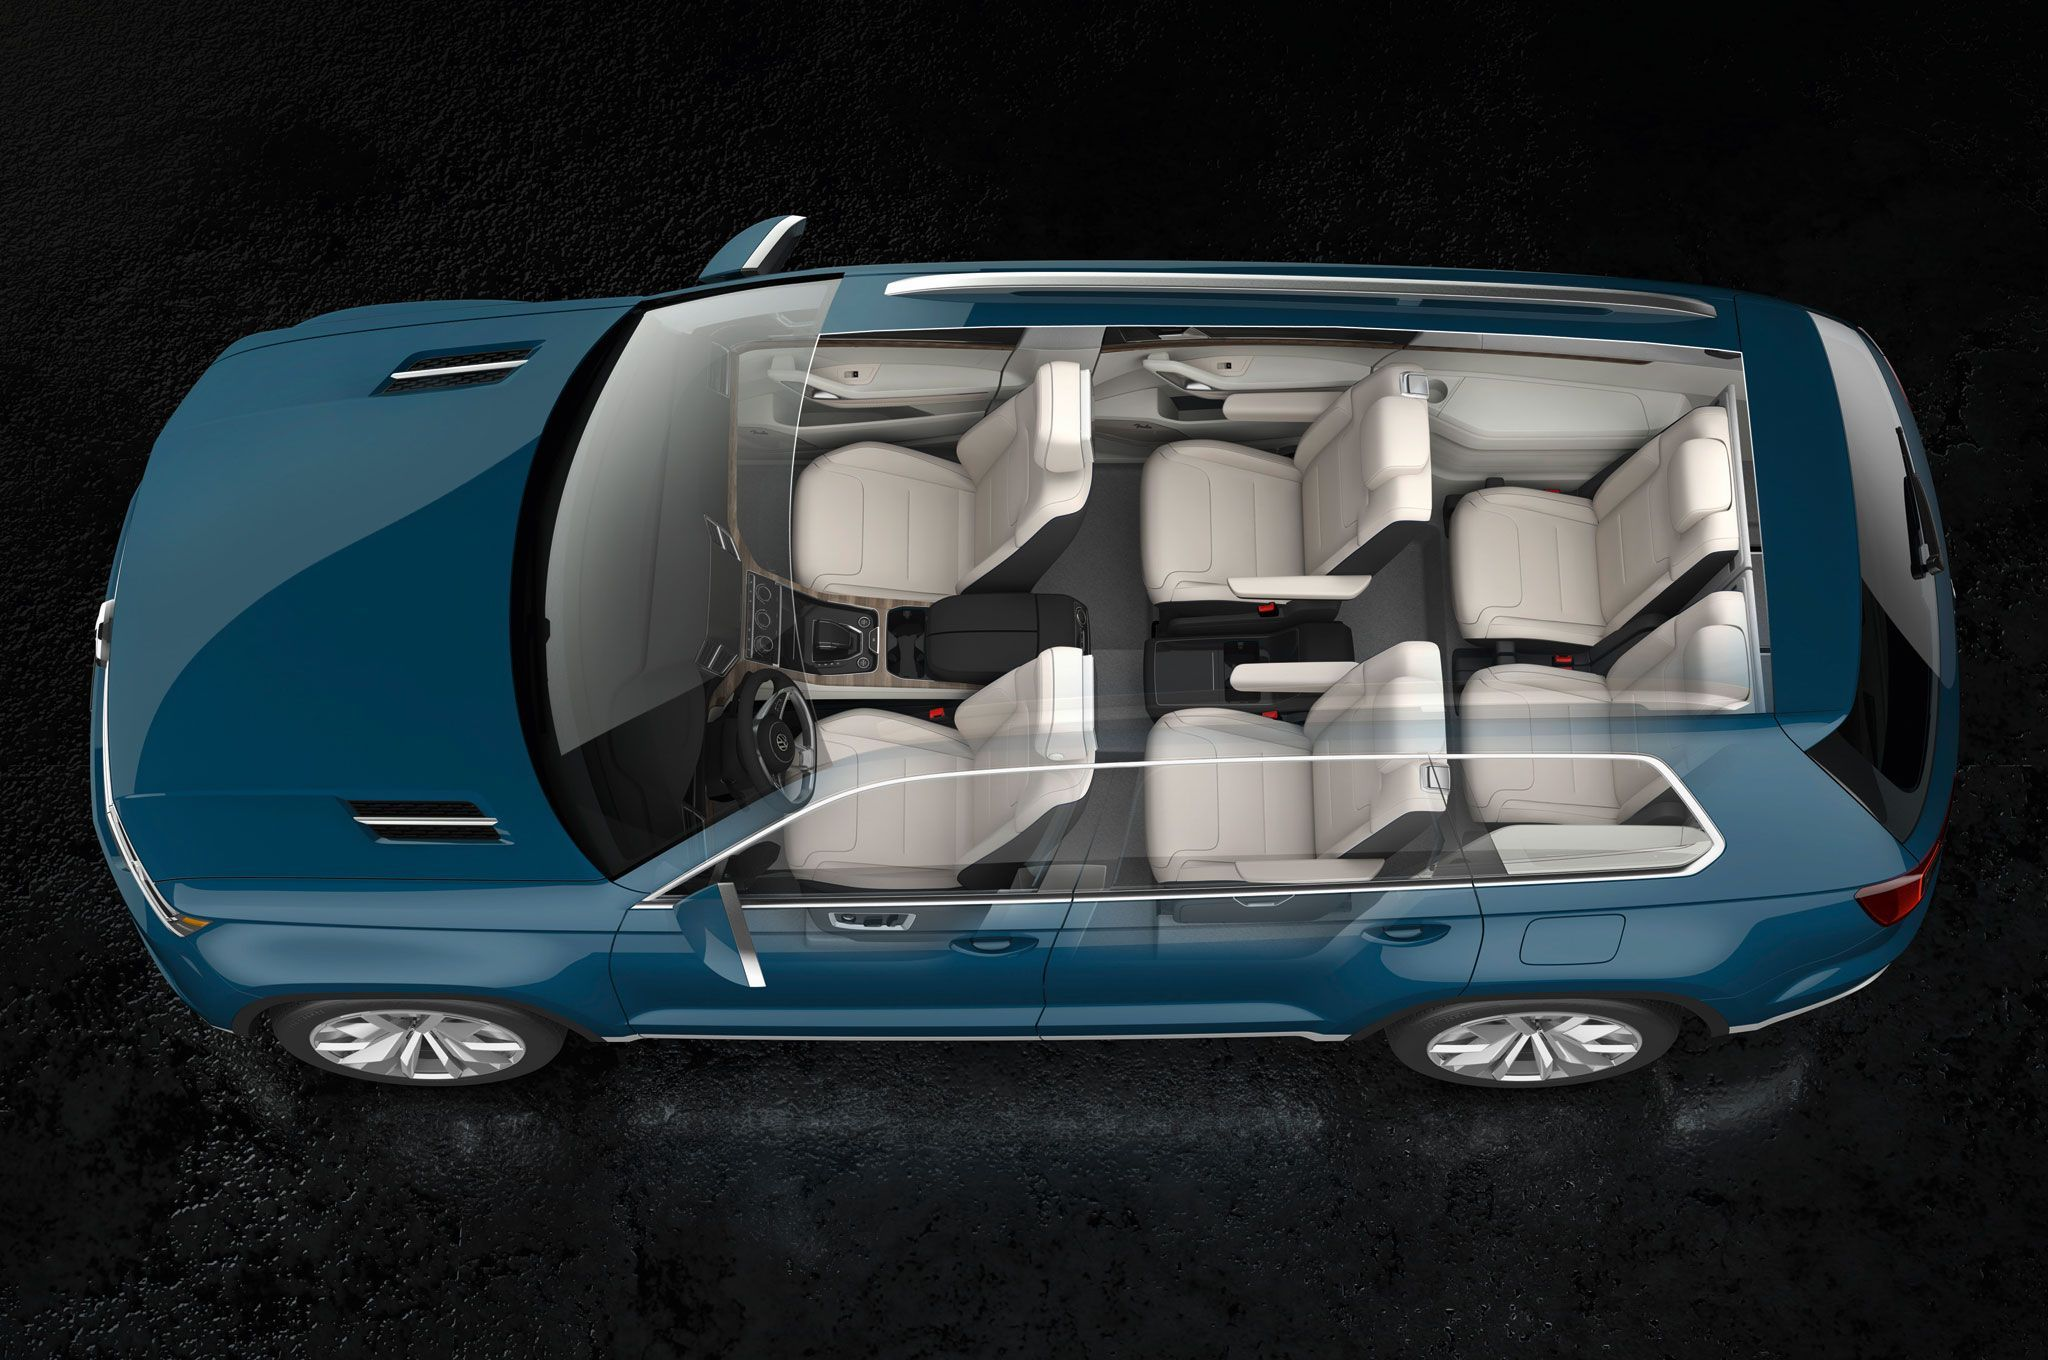 2017 Vw Crossblue Concept Top View